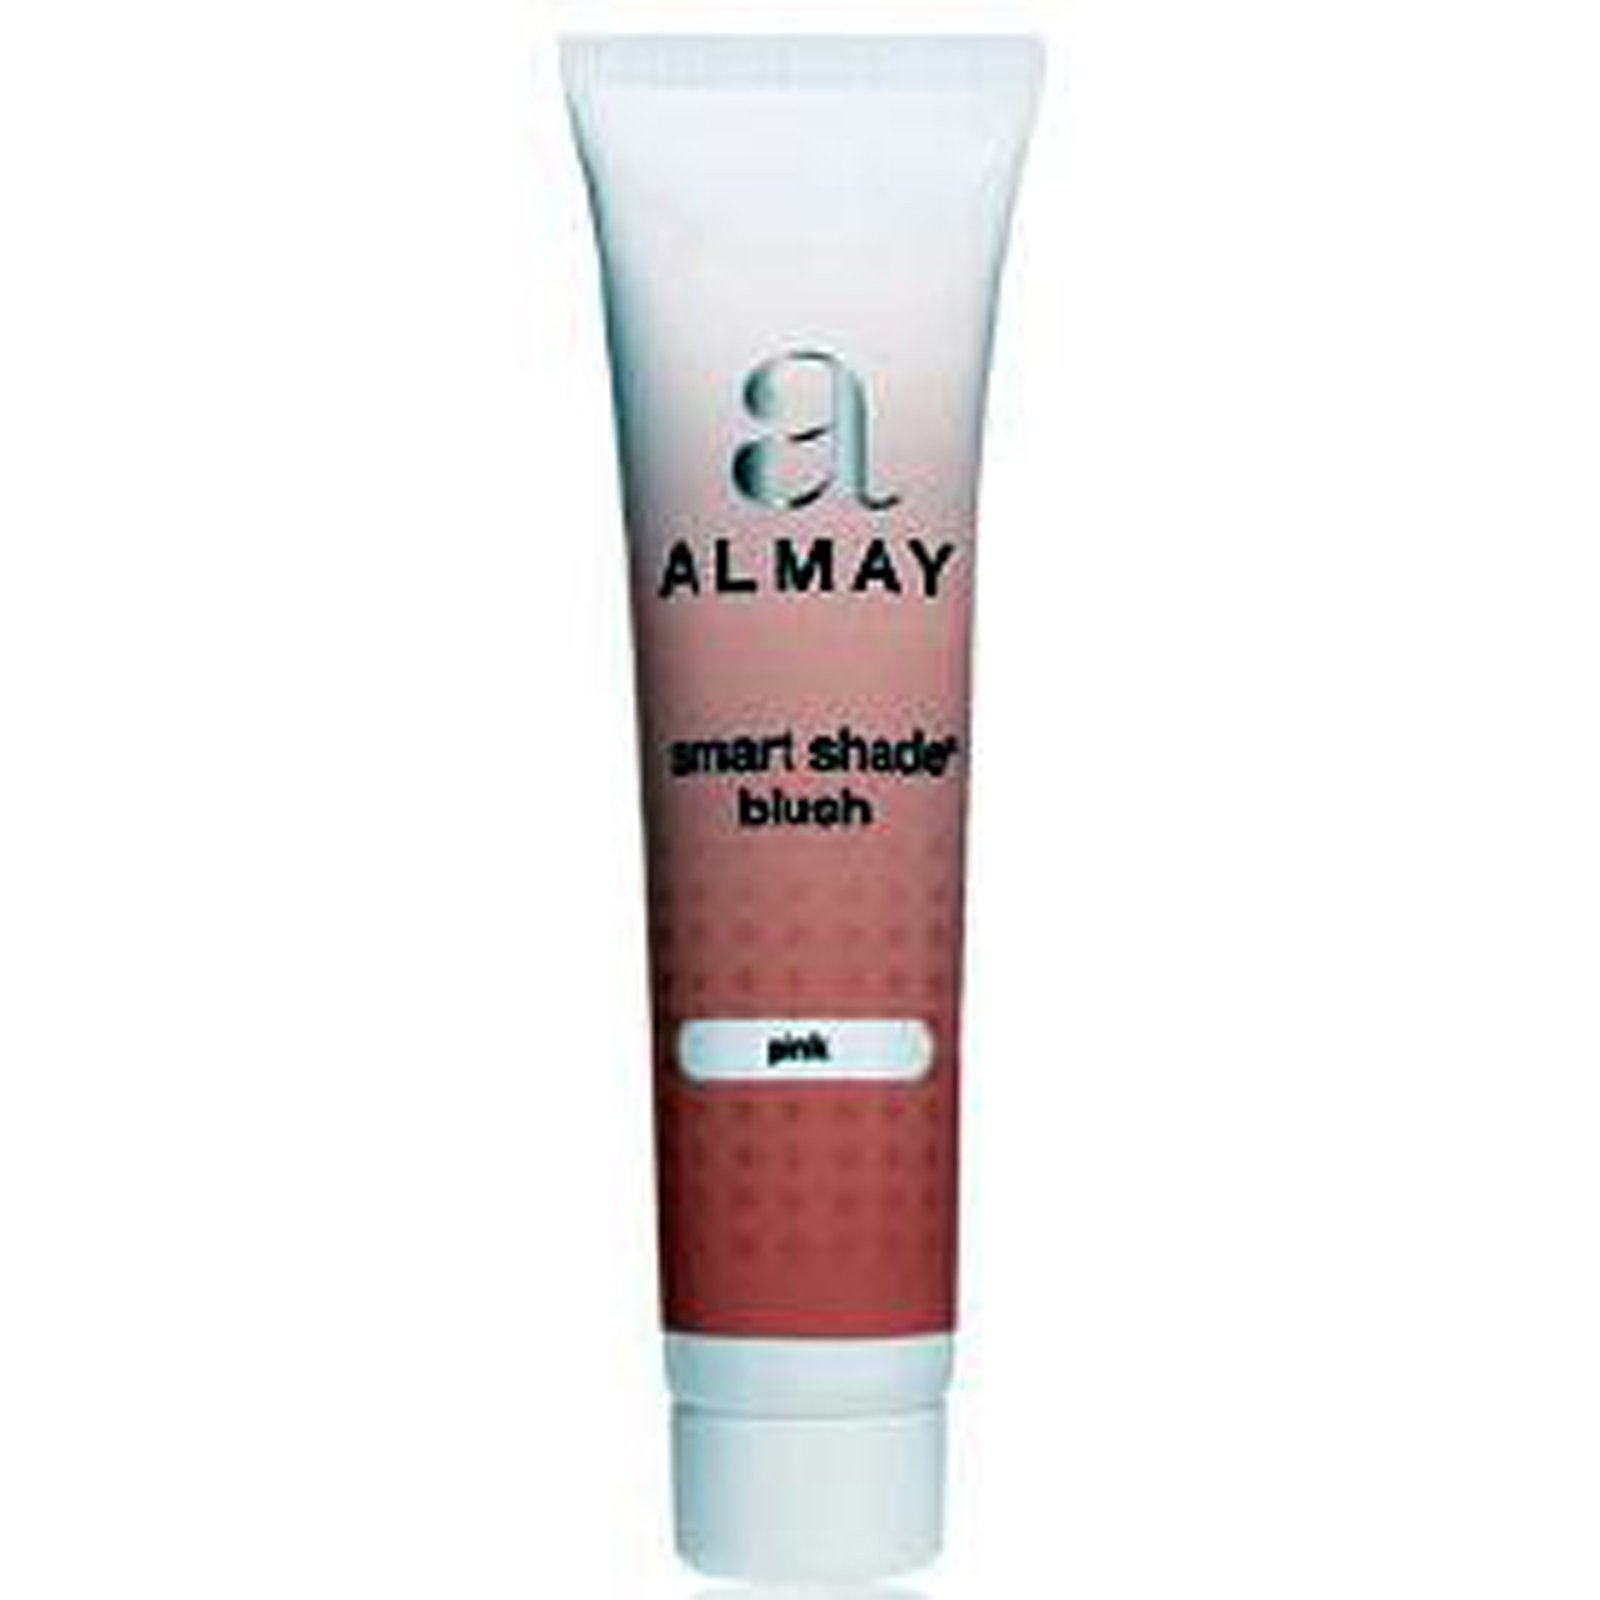 Almay Smart Shade Blush, Pink 010, 0.5-Ounce